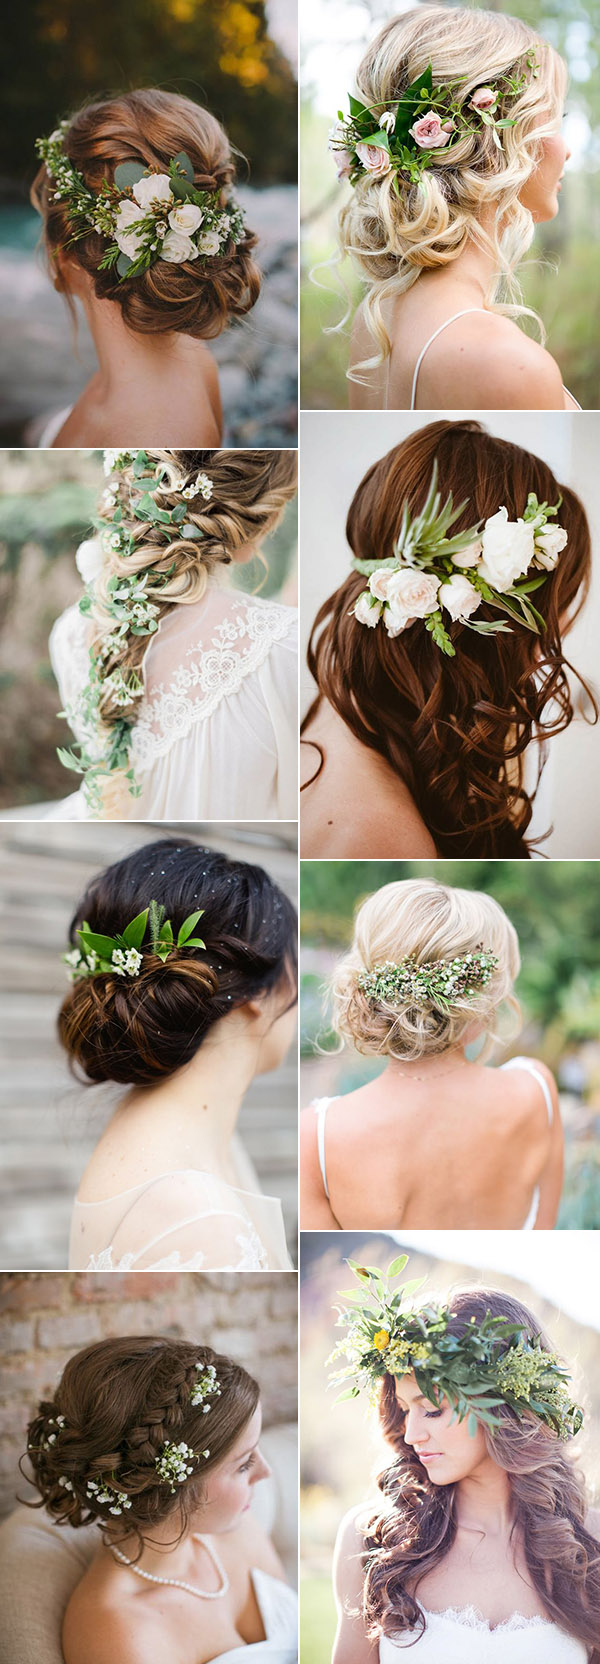 wedding_hairstyles-31